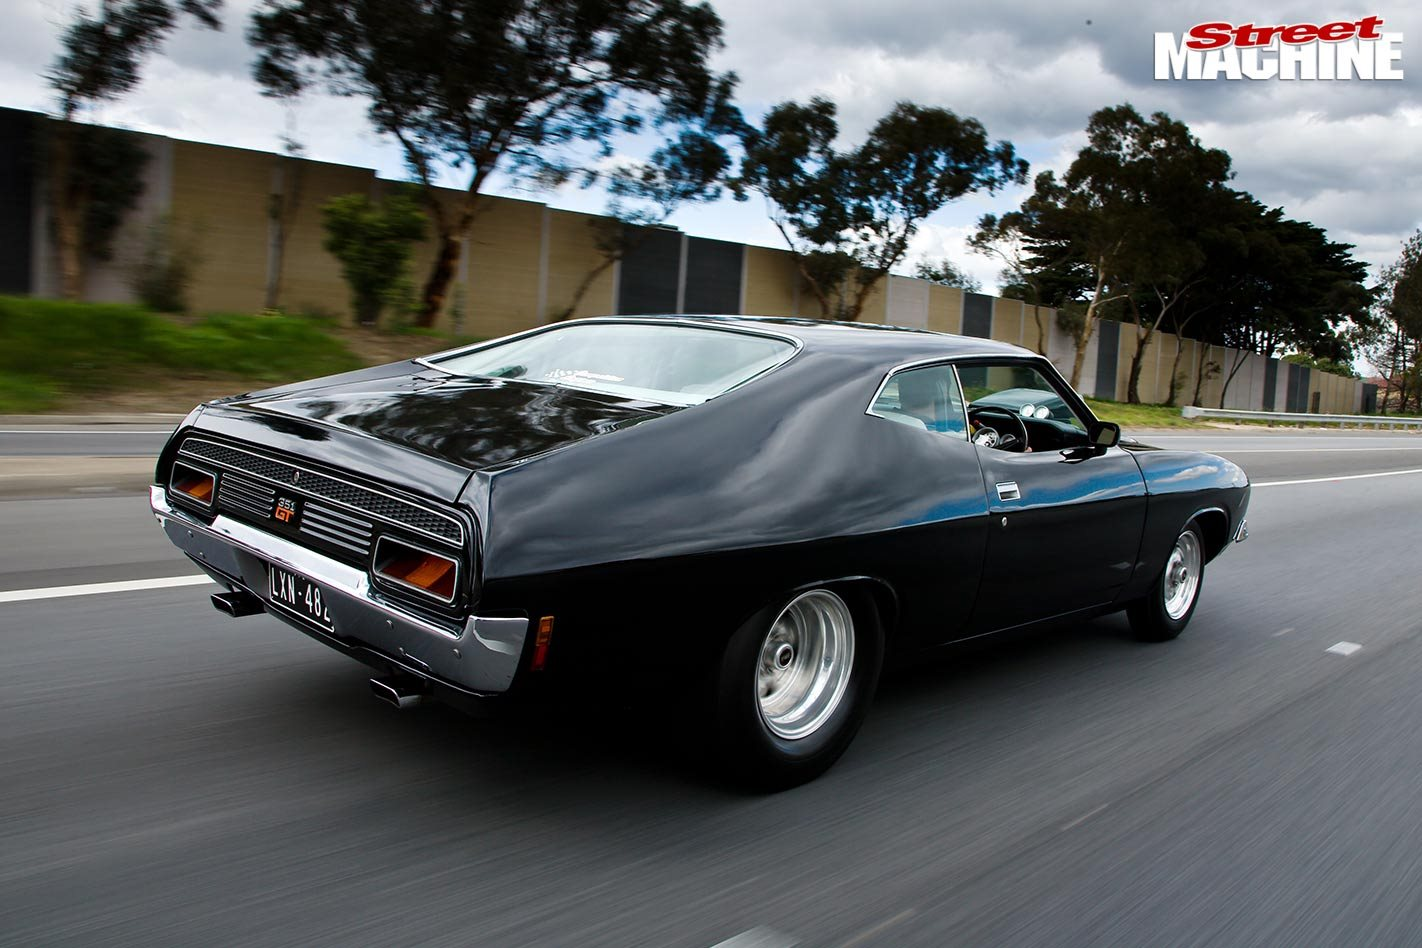 1974 Ford Falcon Xb Coupe Running A 427 Windsor